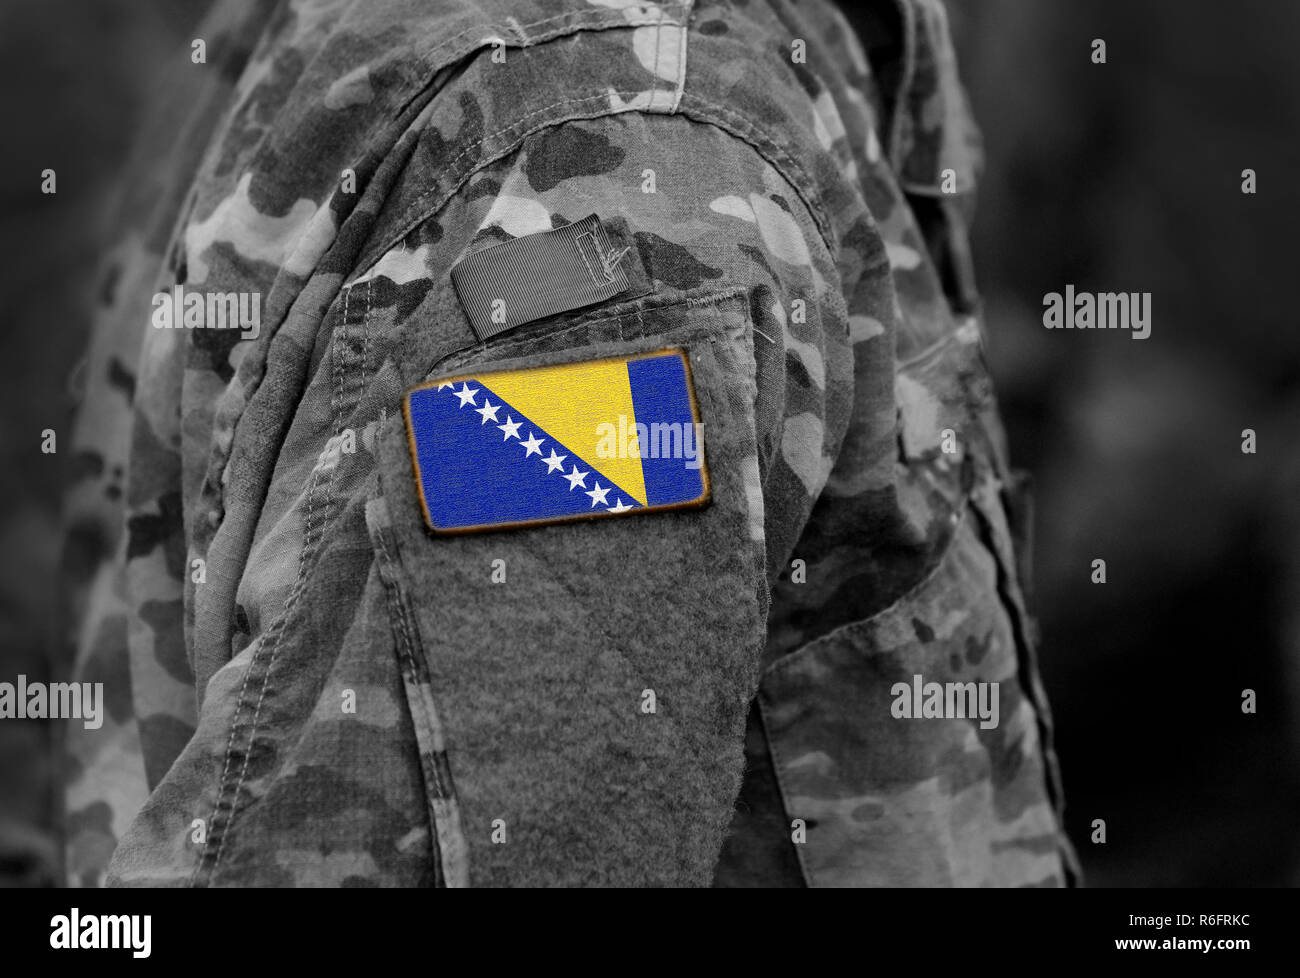 Flag of Bosnia and Herzegovina on soldiers arm (collage). Stock Photo